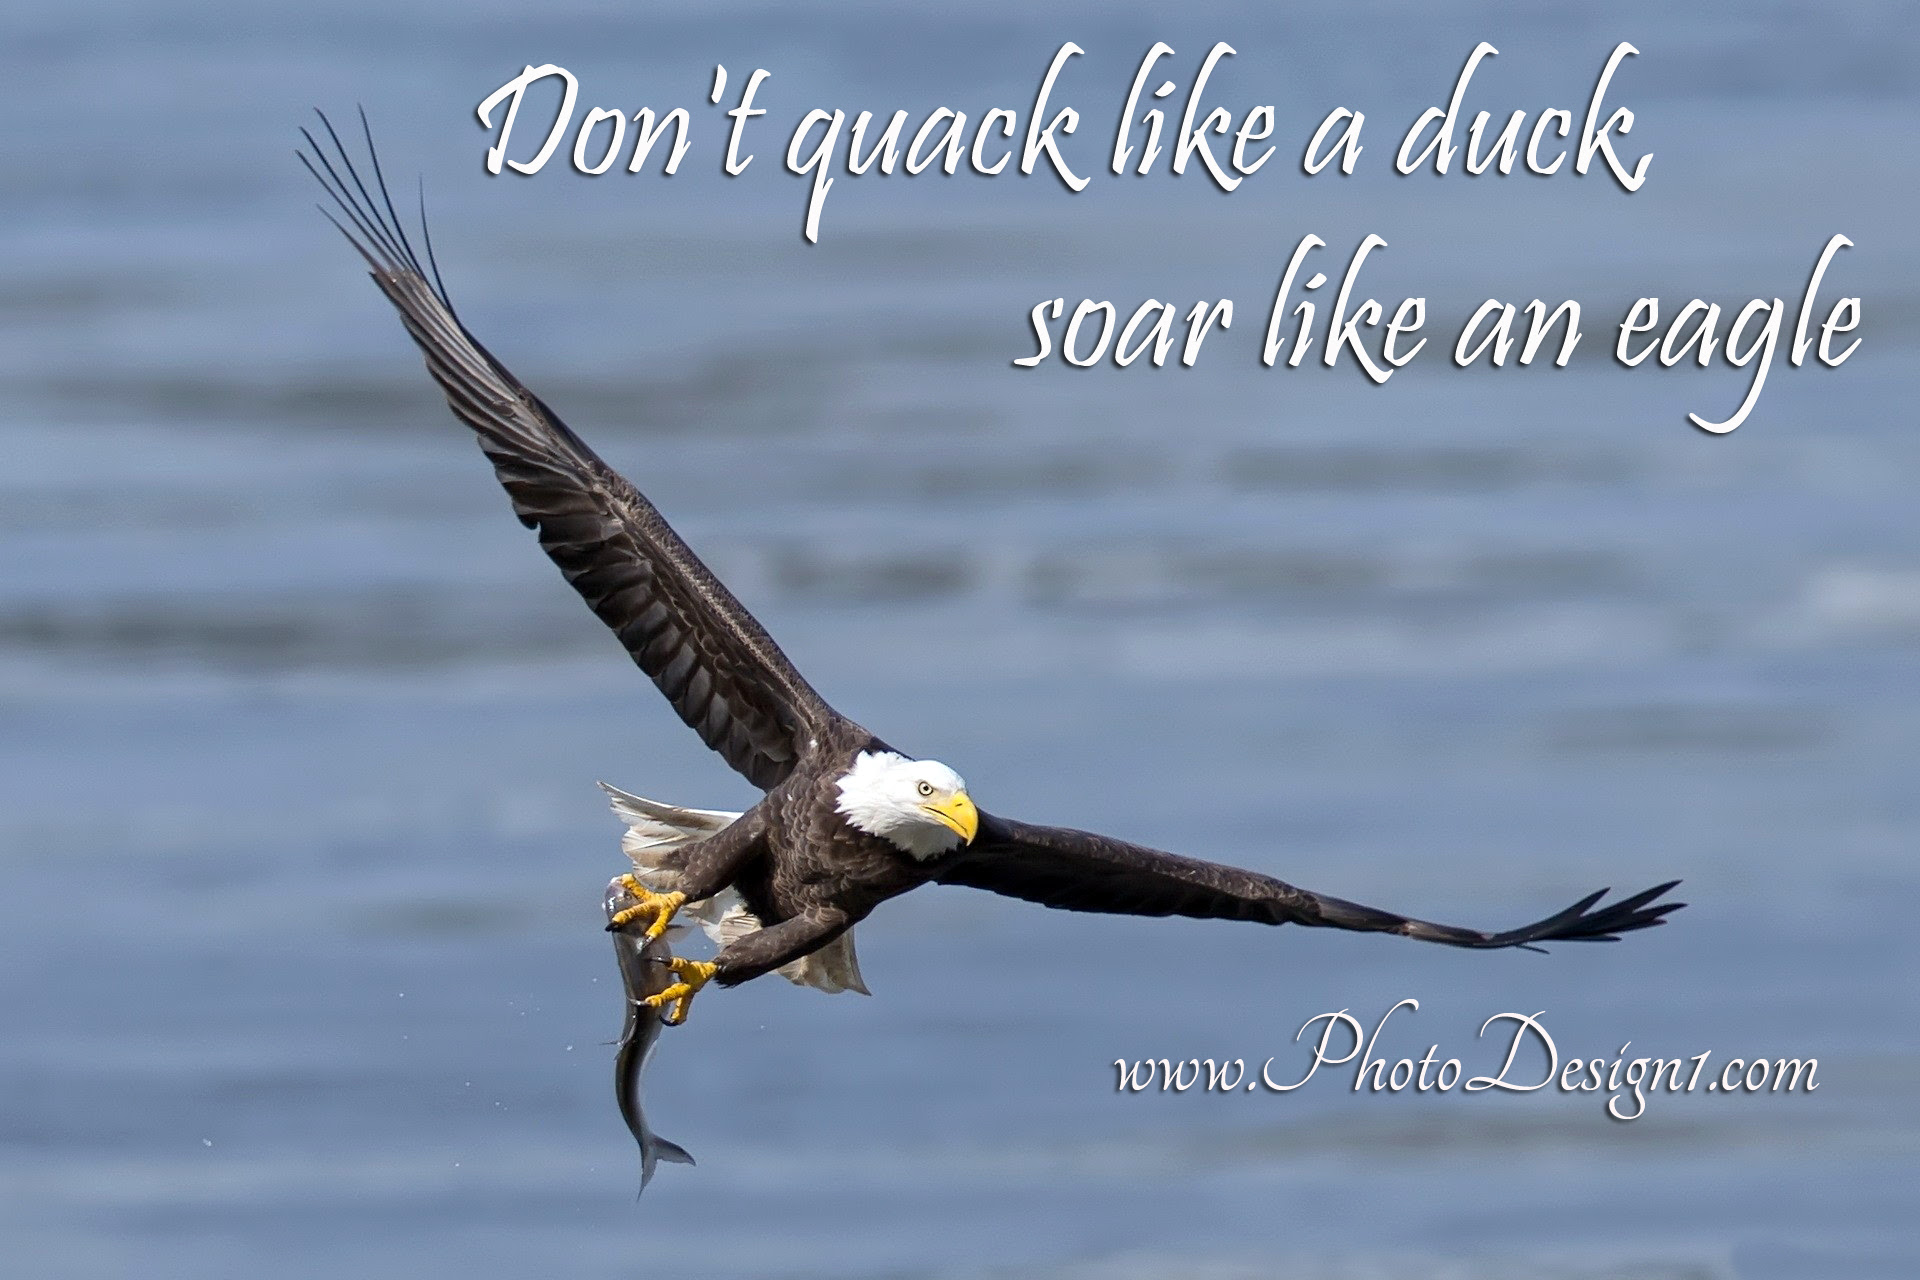 Eagle Quotes Sayings Animal Quotes Sayings